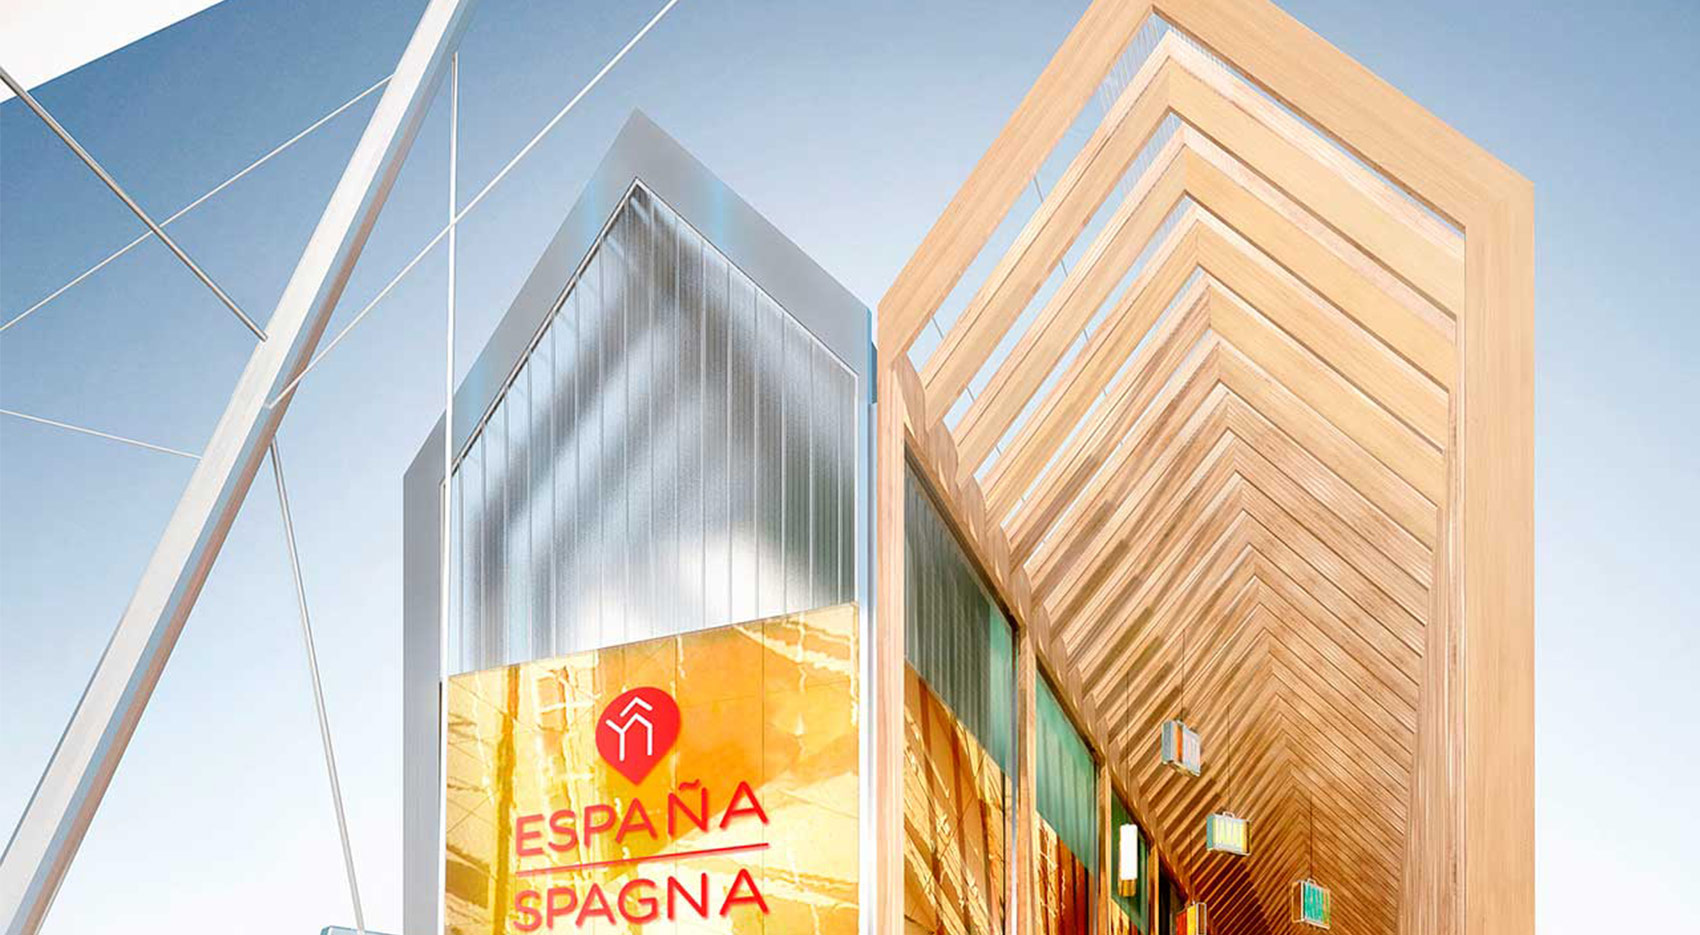 Expo 2015 showcases the best in world architecture in Milan Spain Codina Architectural blog